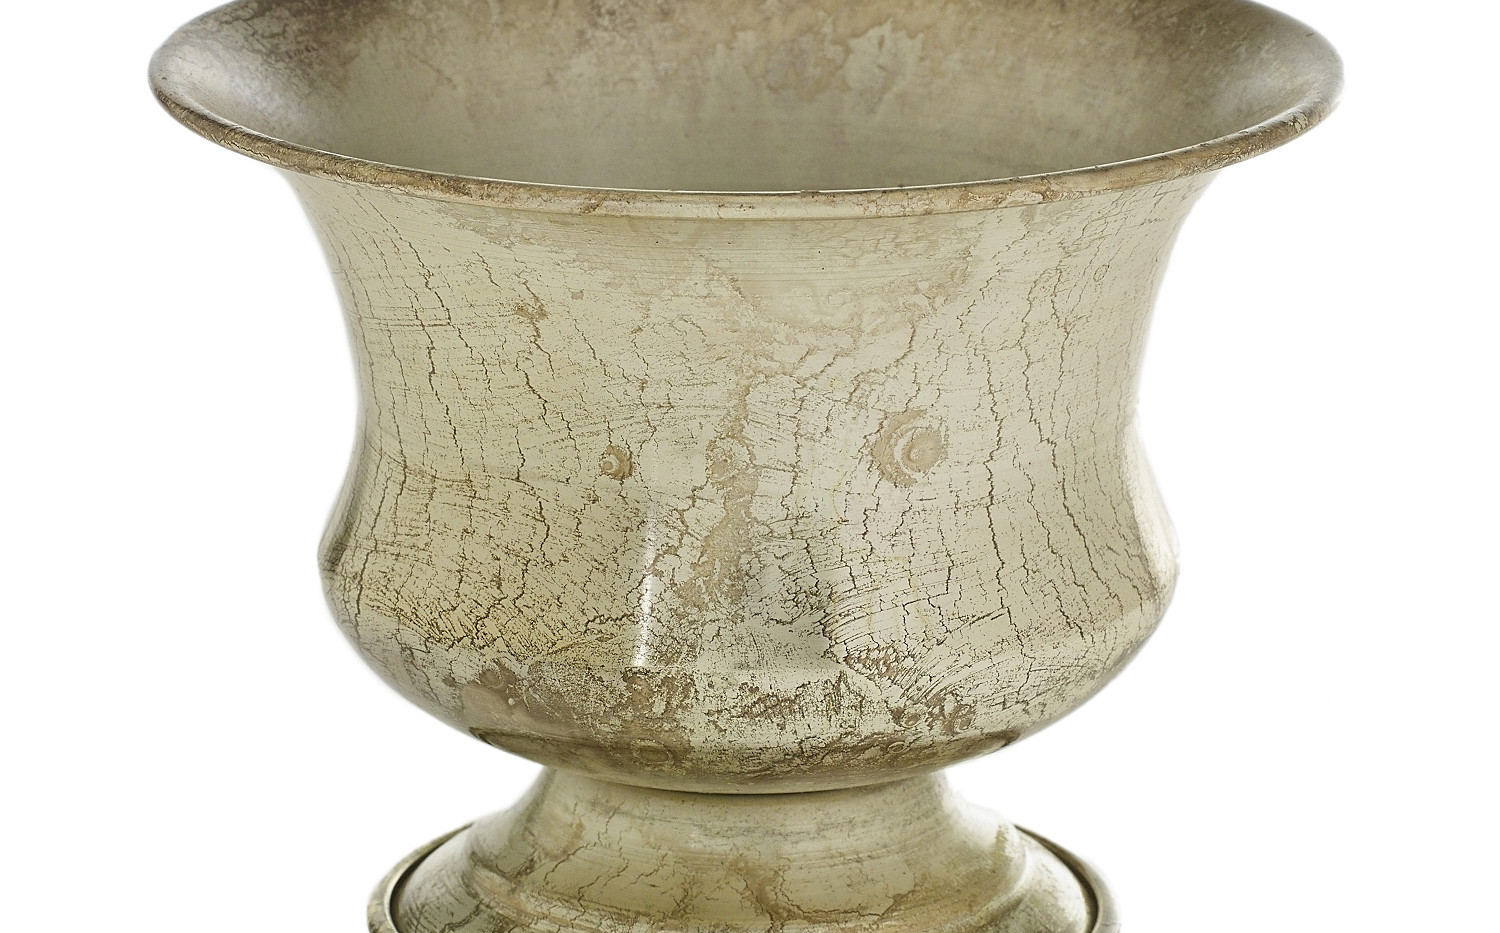 Silver Footed Compote